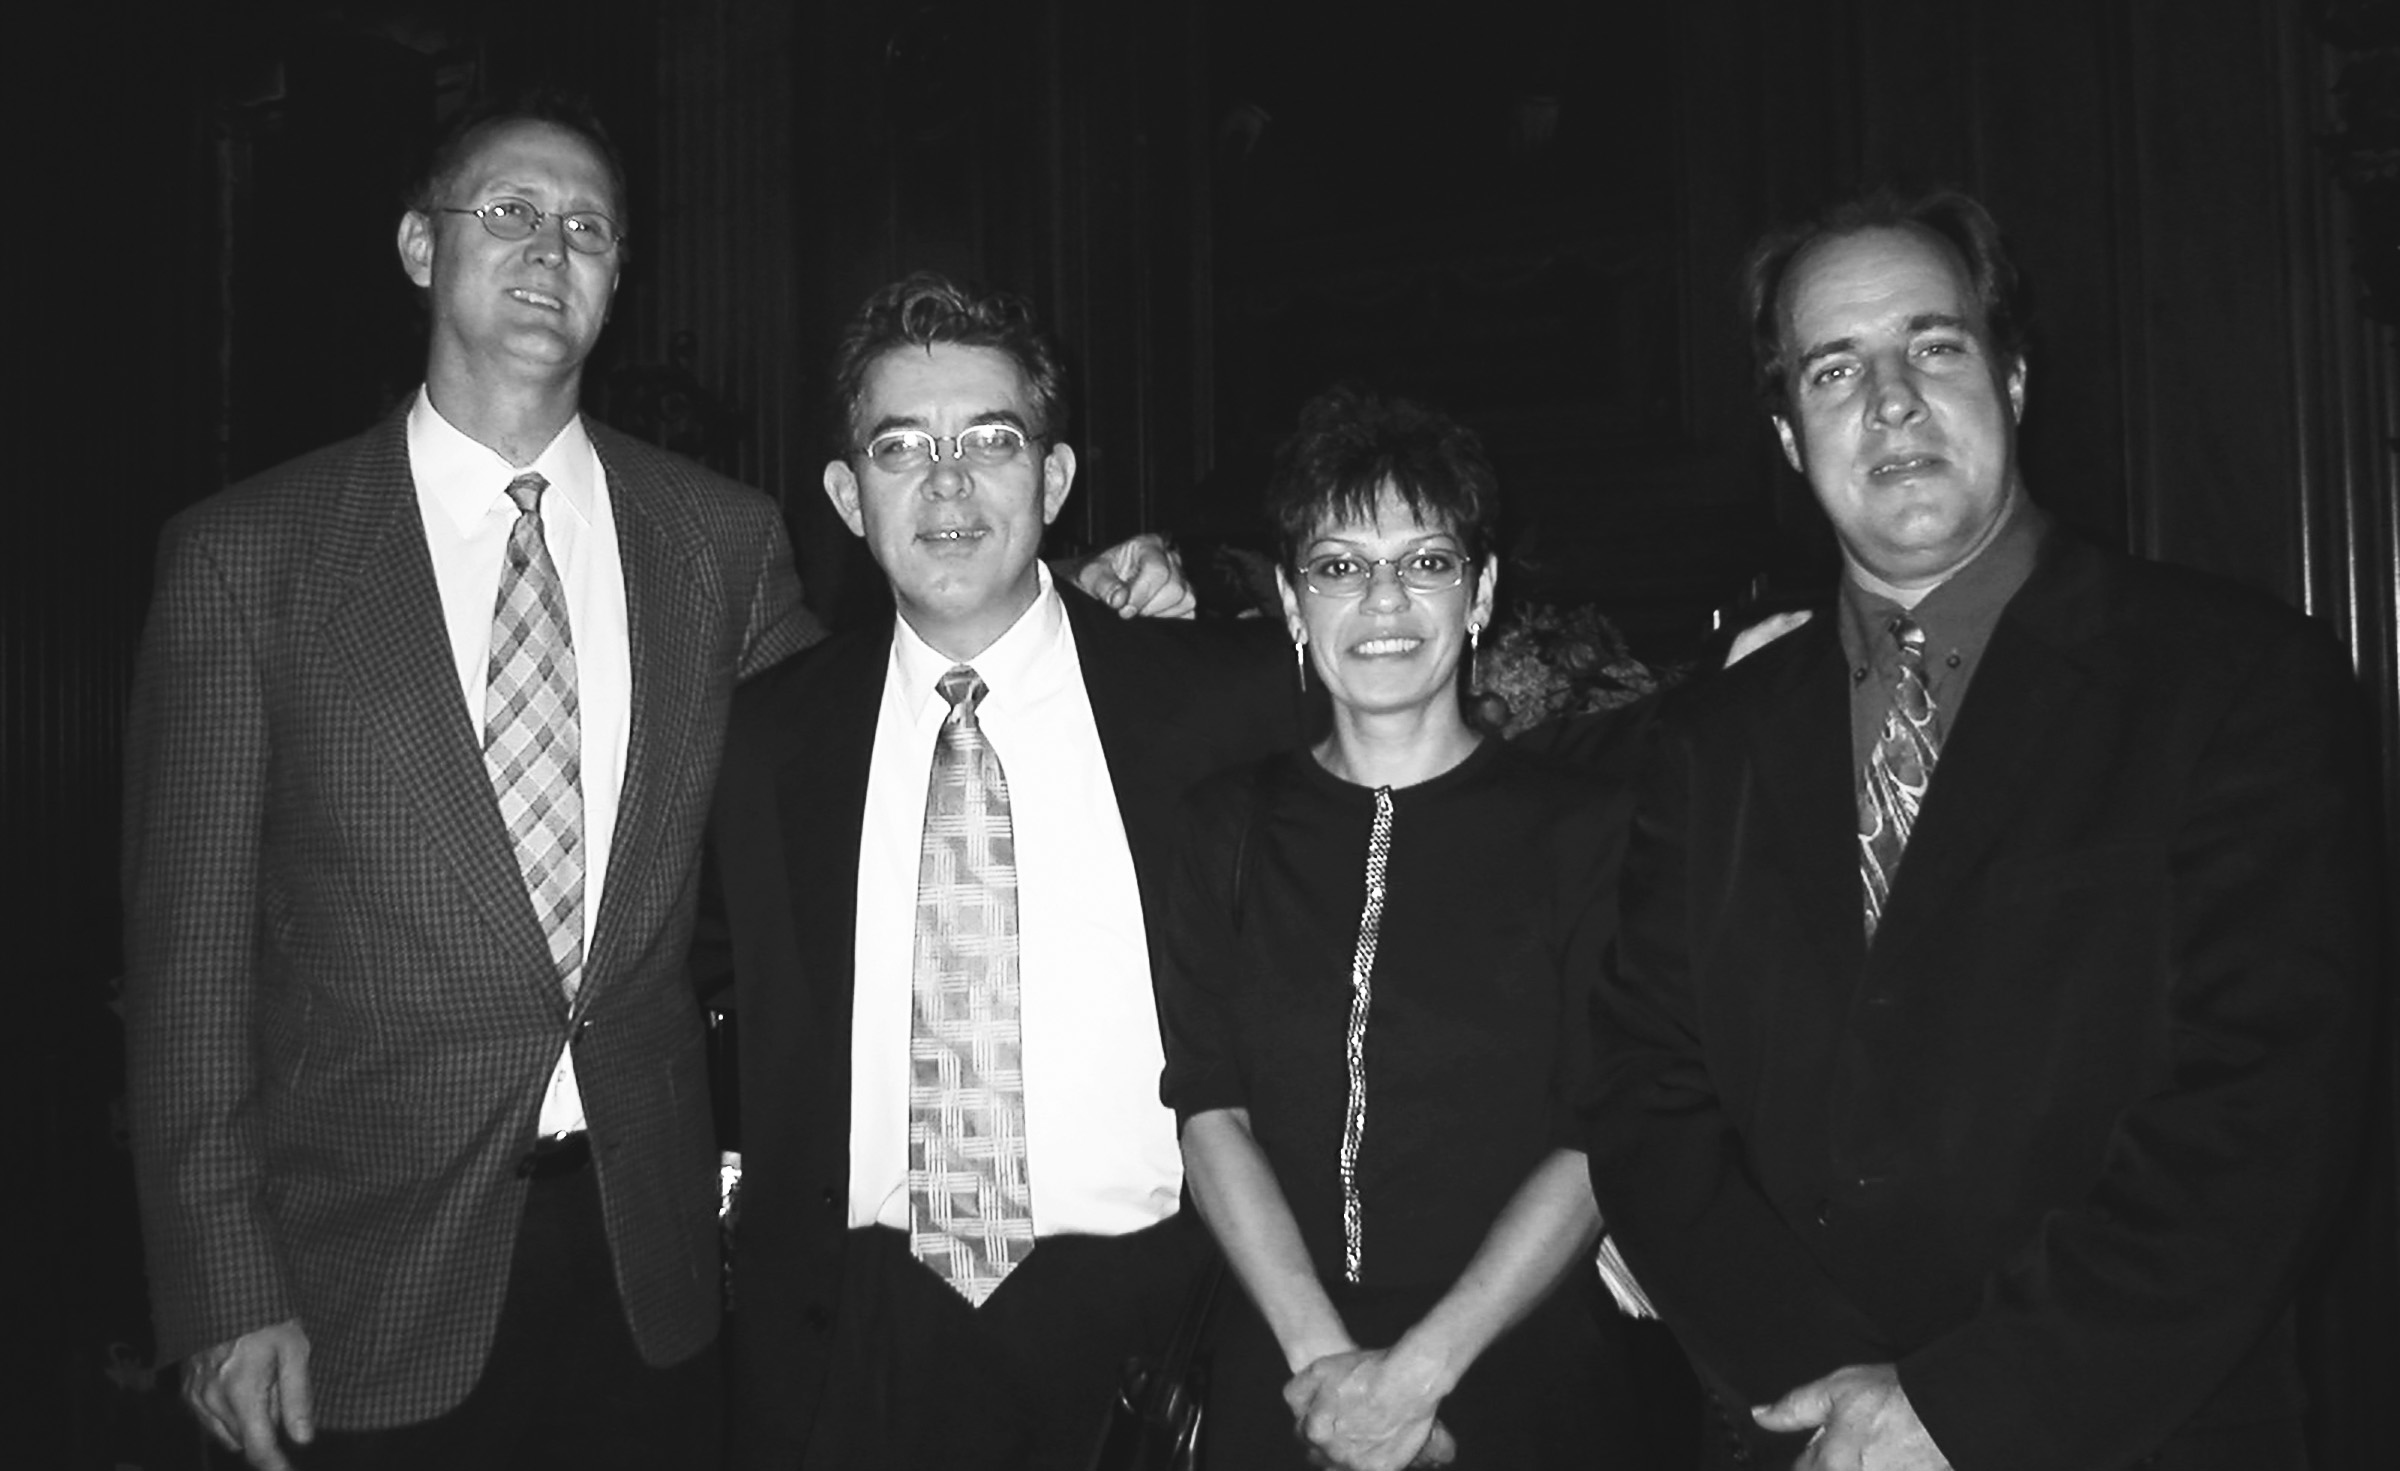 Datevik with her trio, Bob Albanese, Joe Fitzgerald, and David Meade.